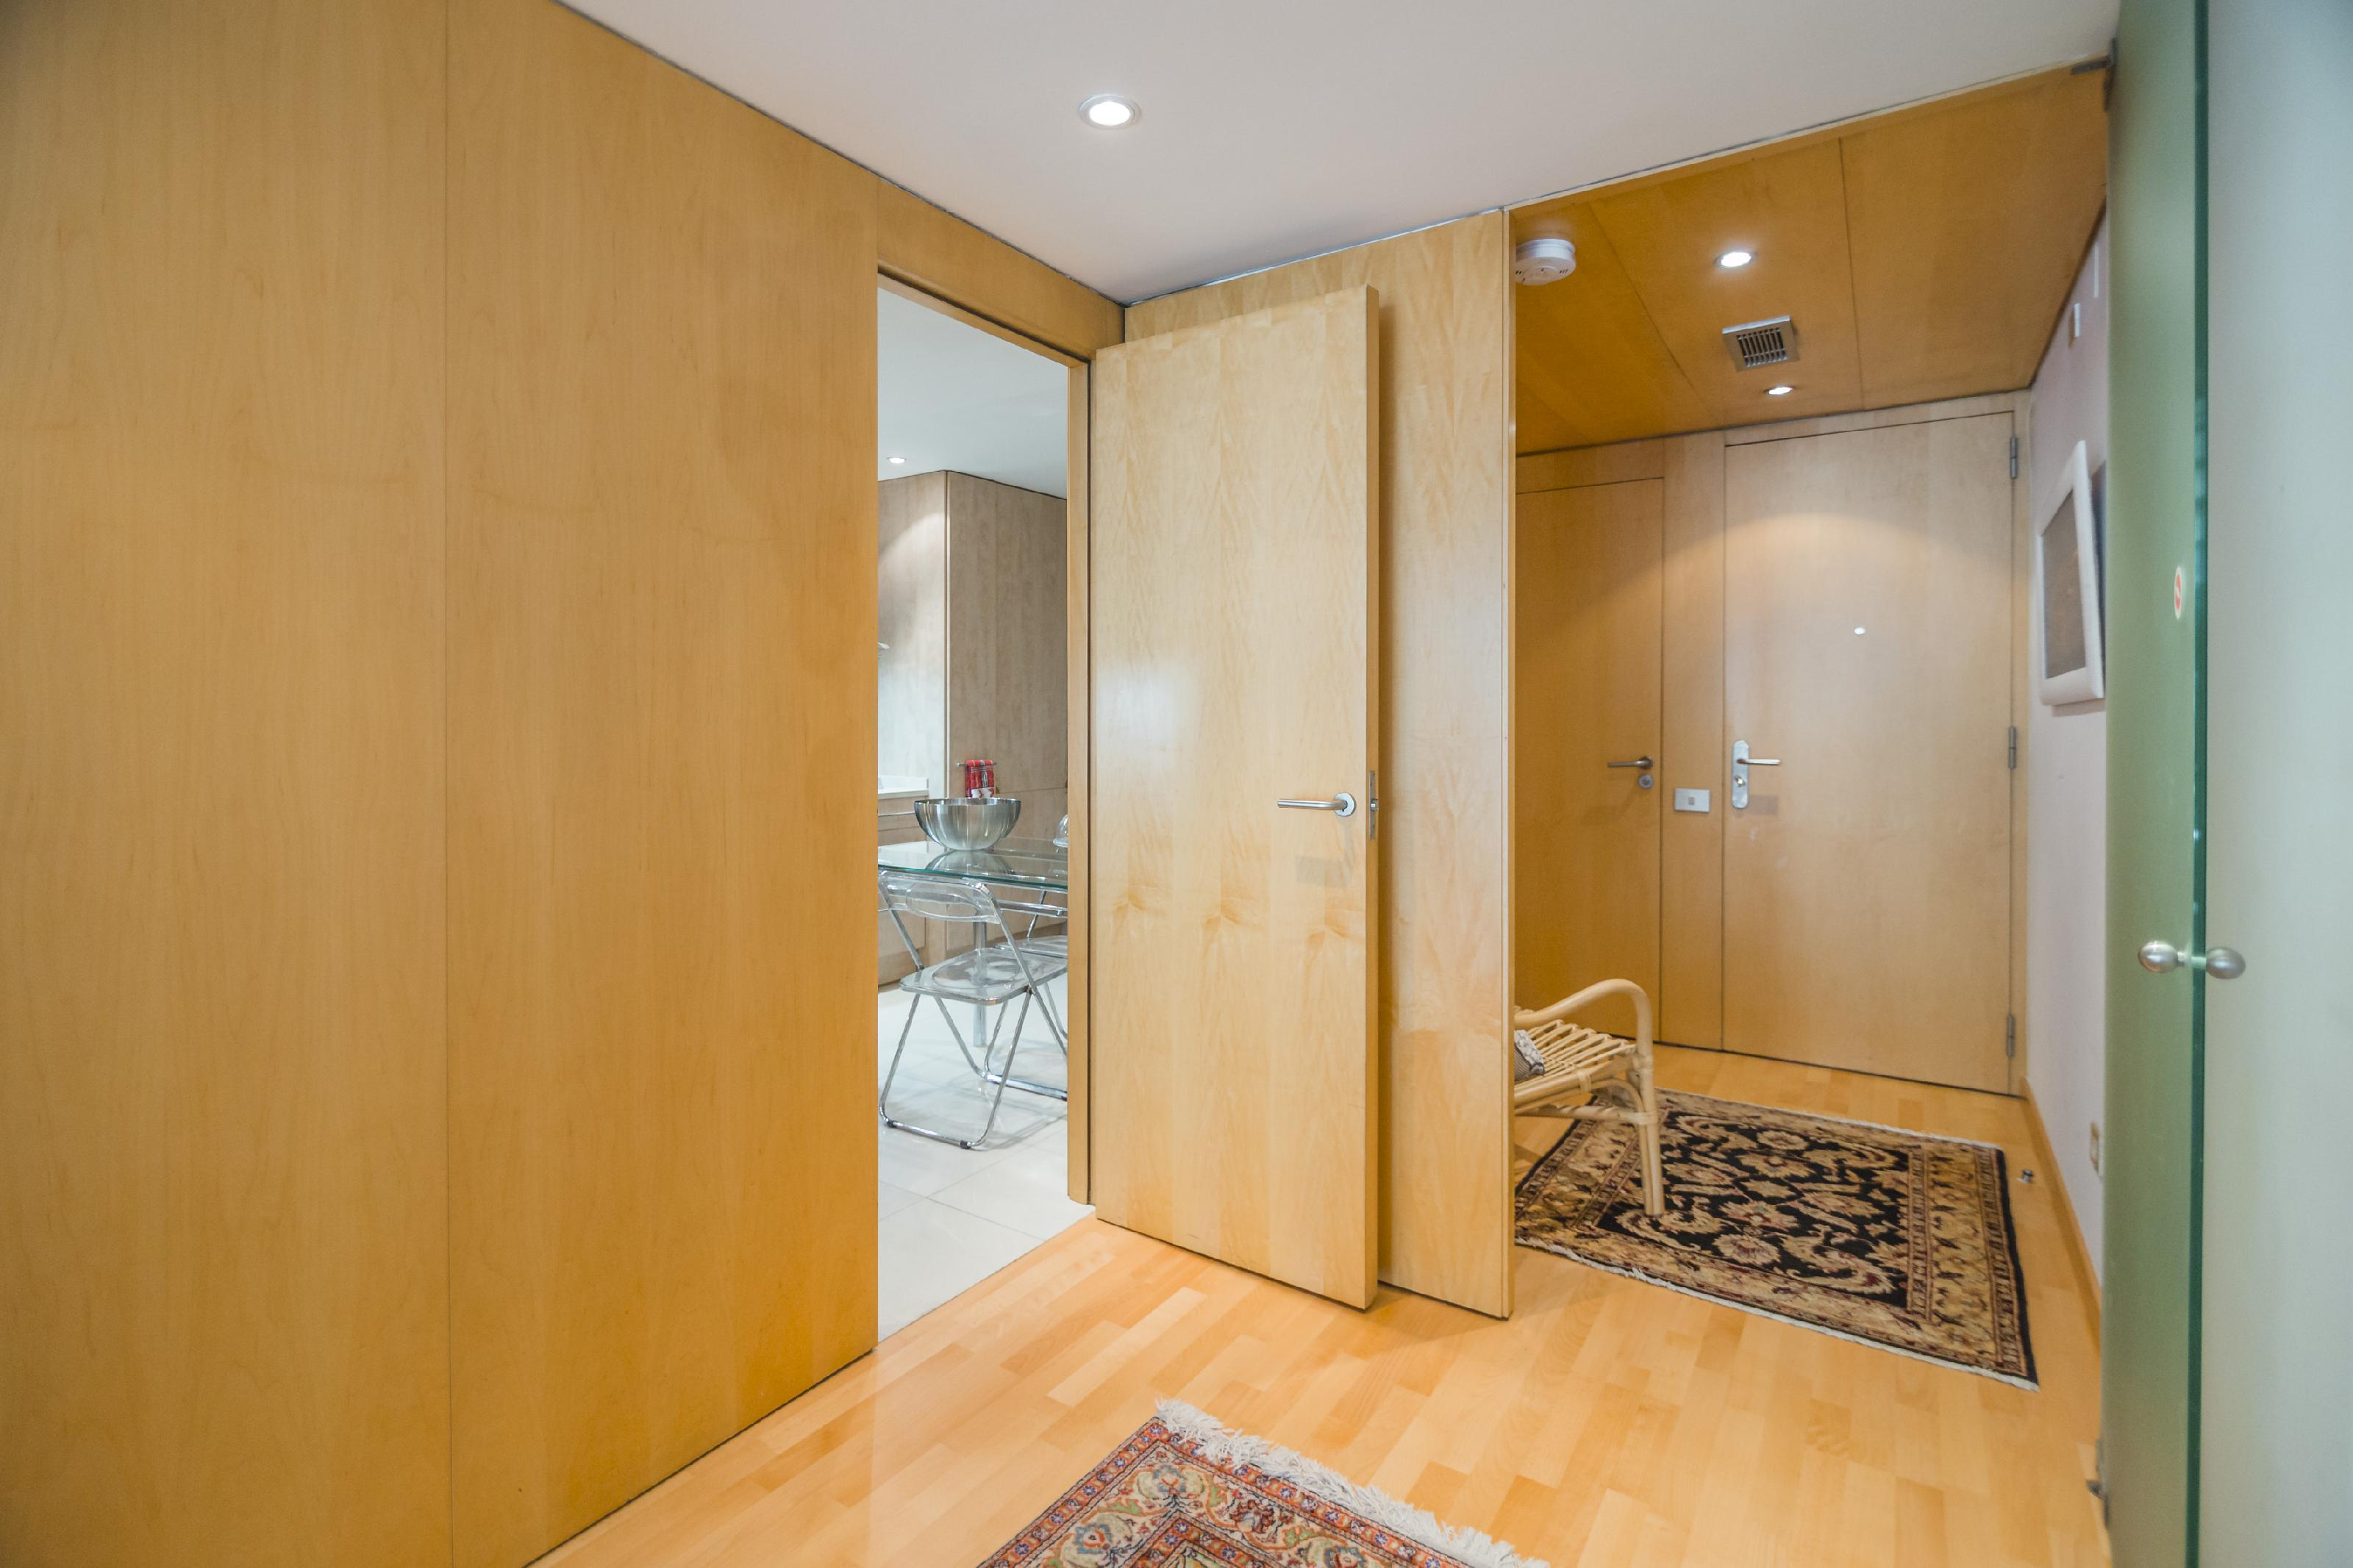 109651 Apartment for sale in Eixample, Dreta Eixample 15